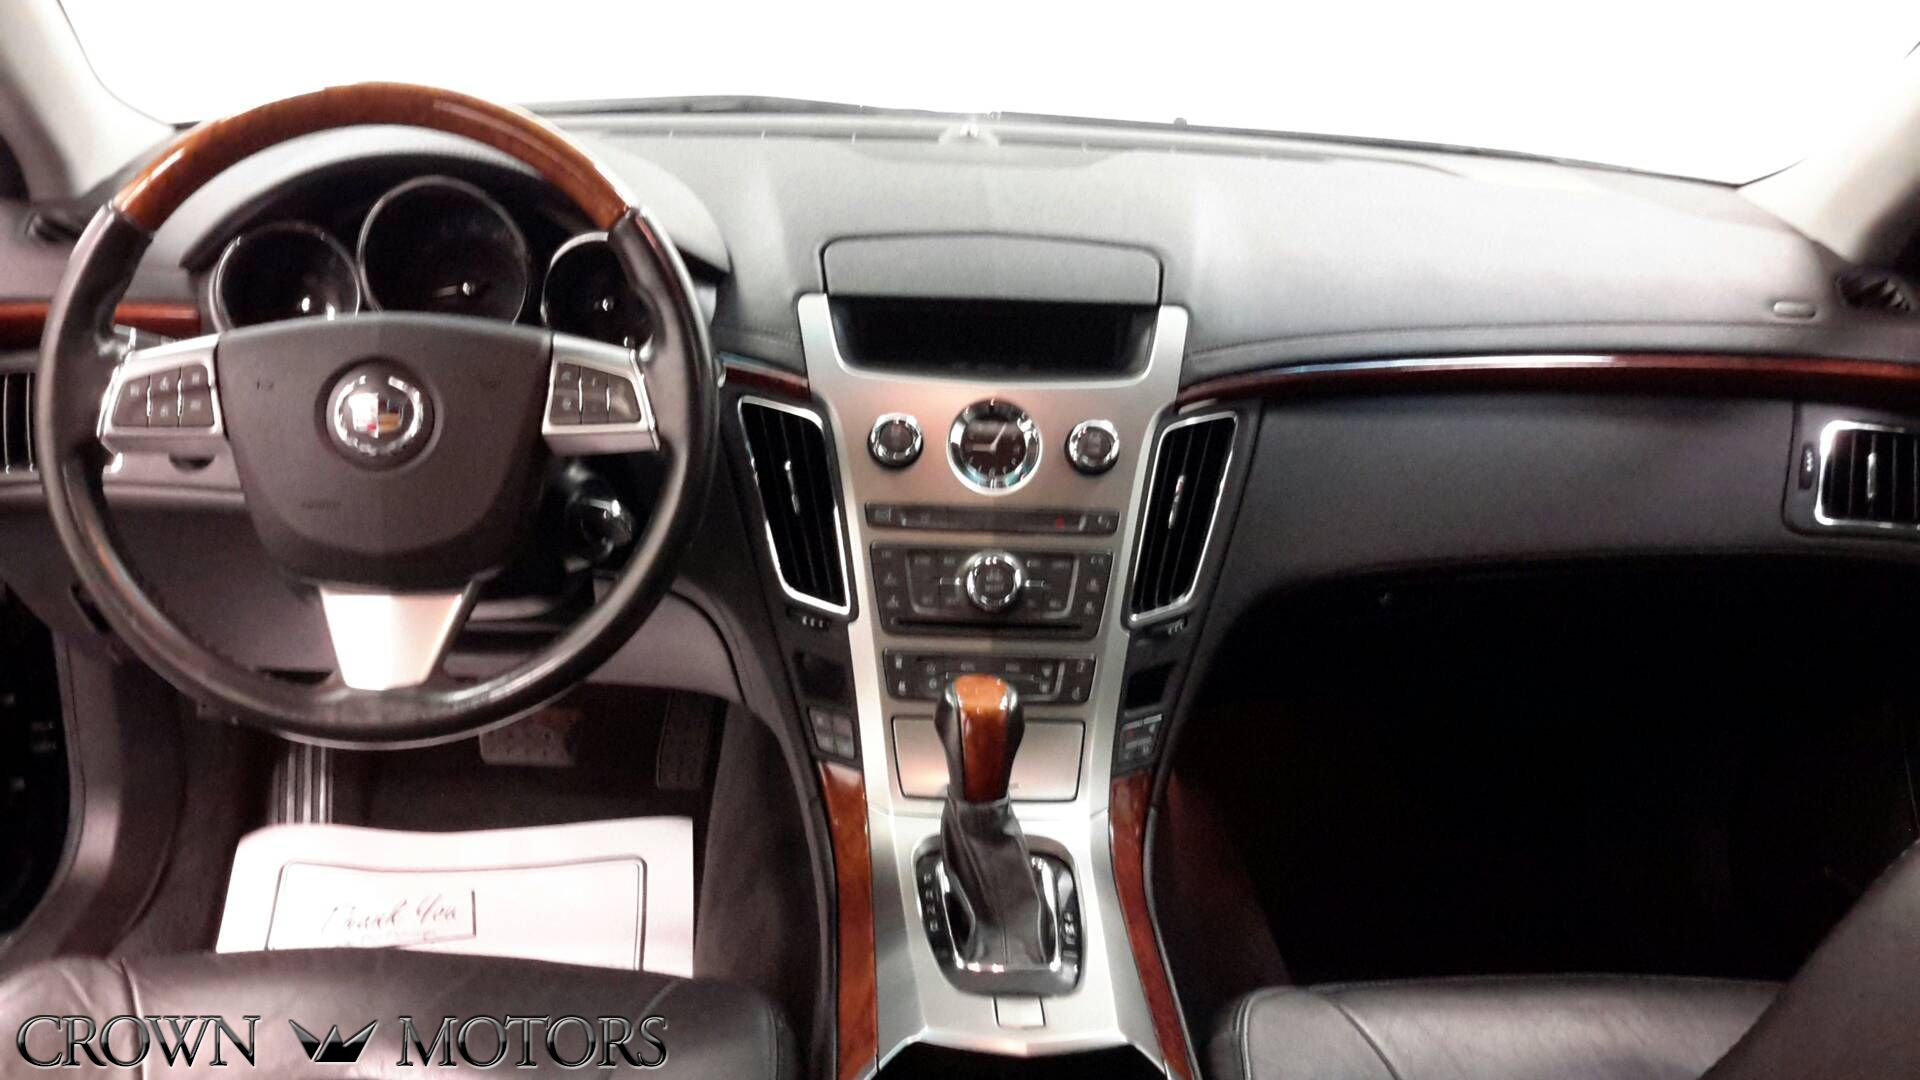 2005 cadillac cts owners manual download